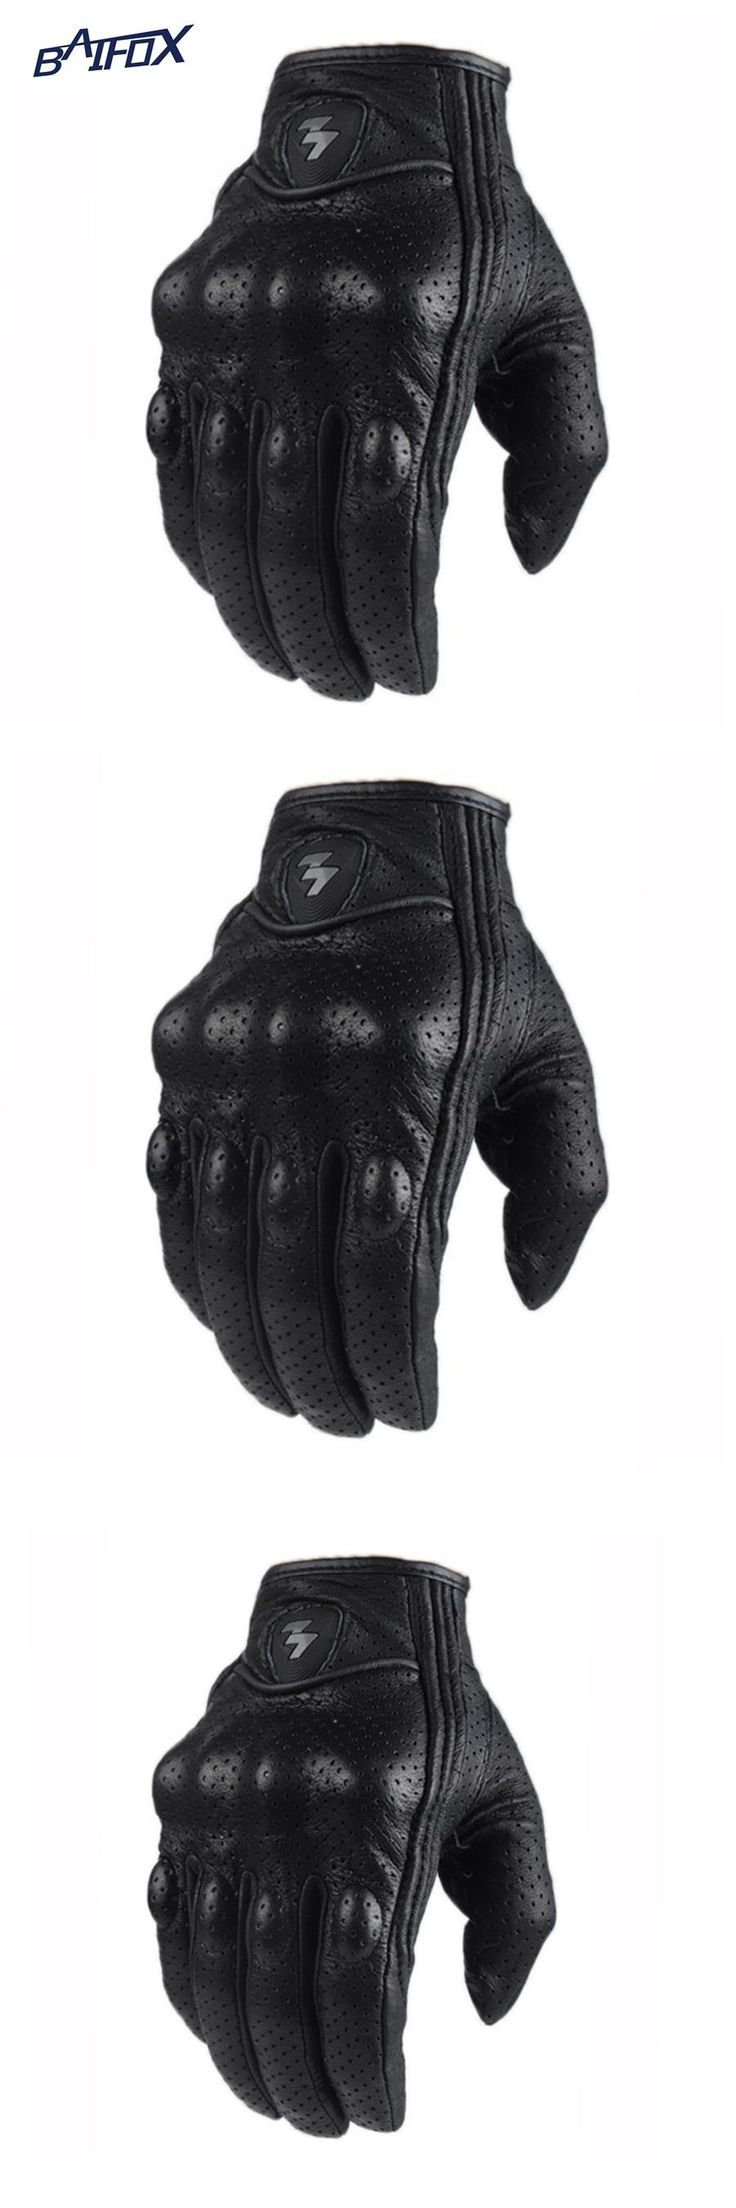 Diavolo leather motorcycle gloves -  Visit To Buy Retro Perforated Leather Motorcycle Gloves Cycling Moto Motorbike Protective Gears Motocross